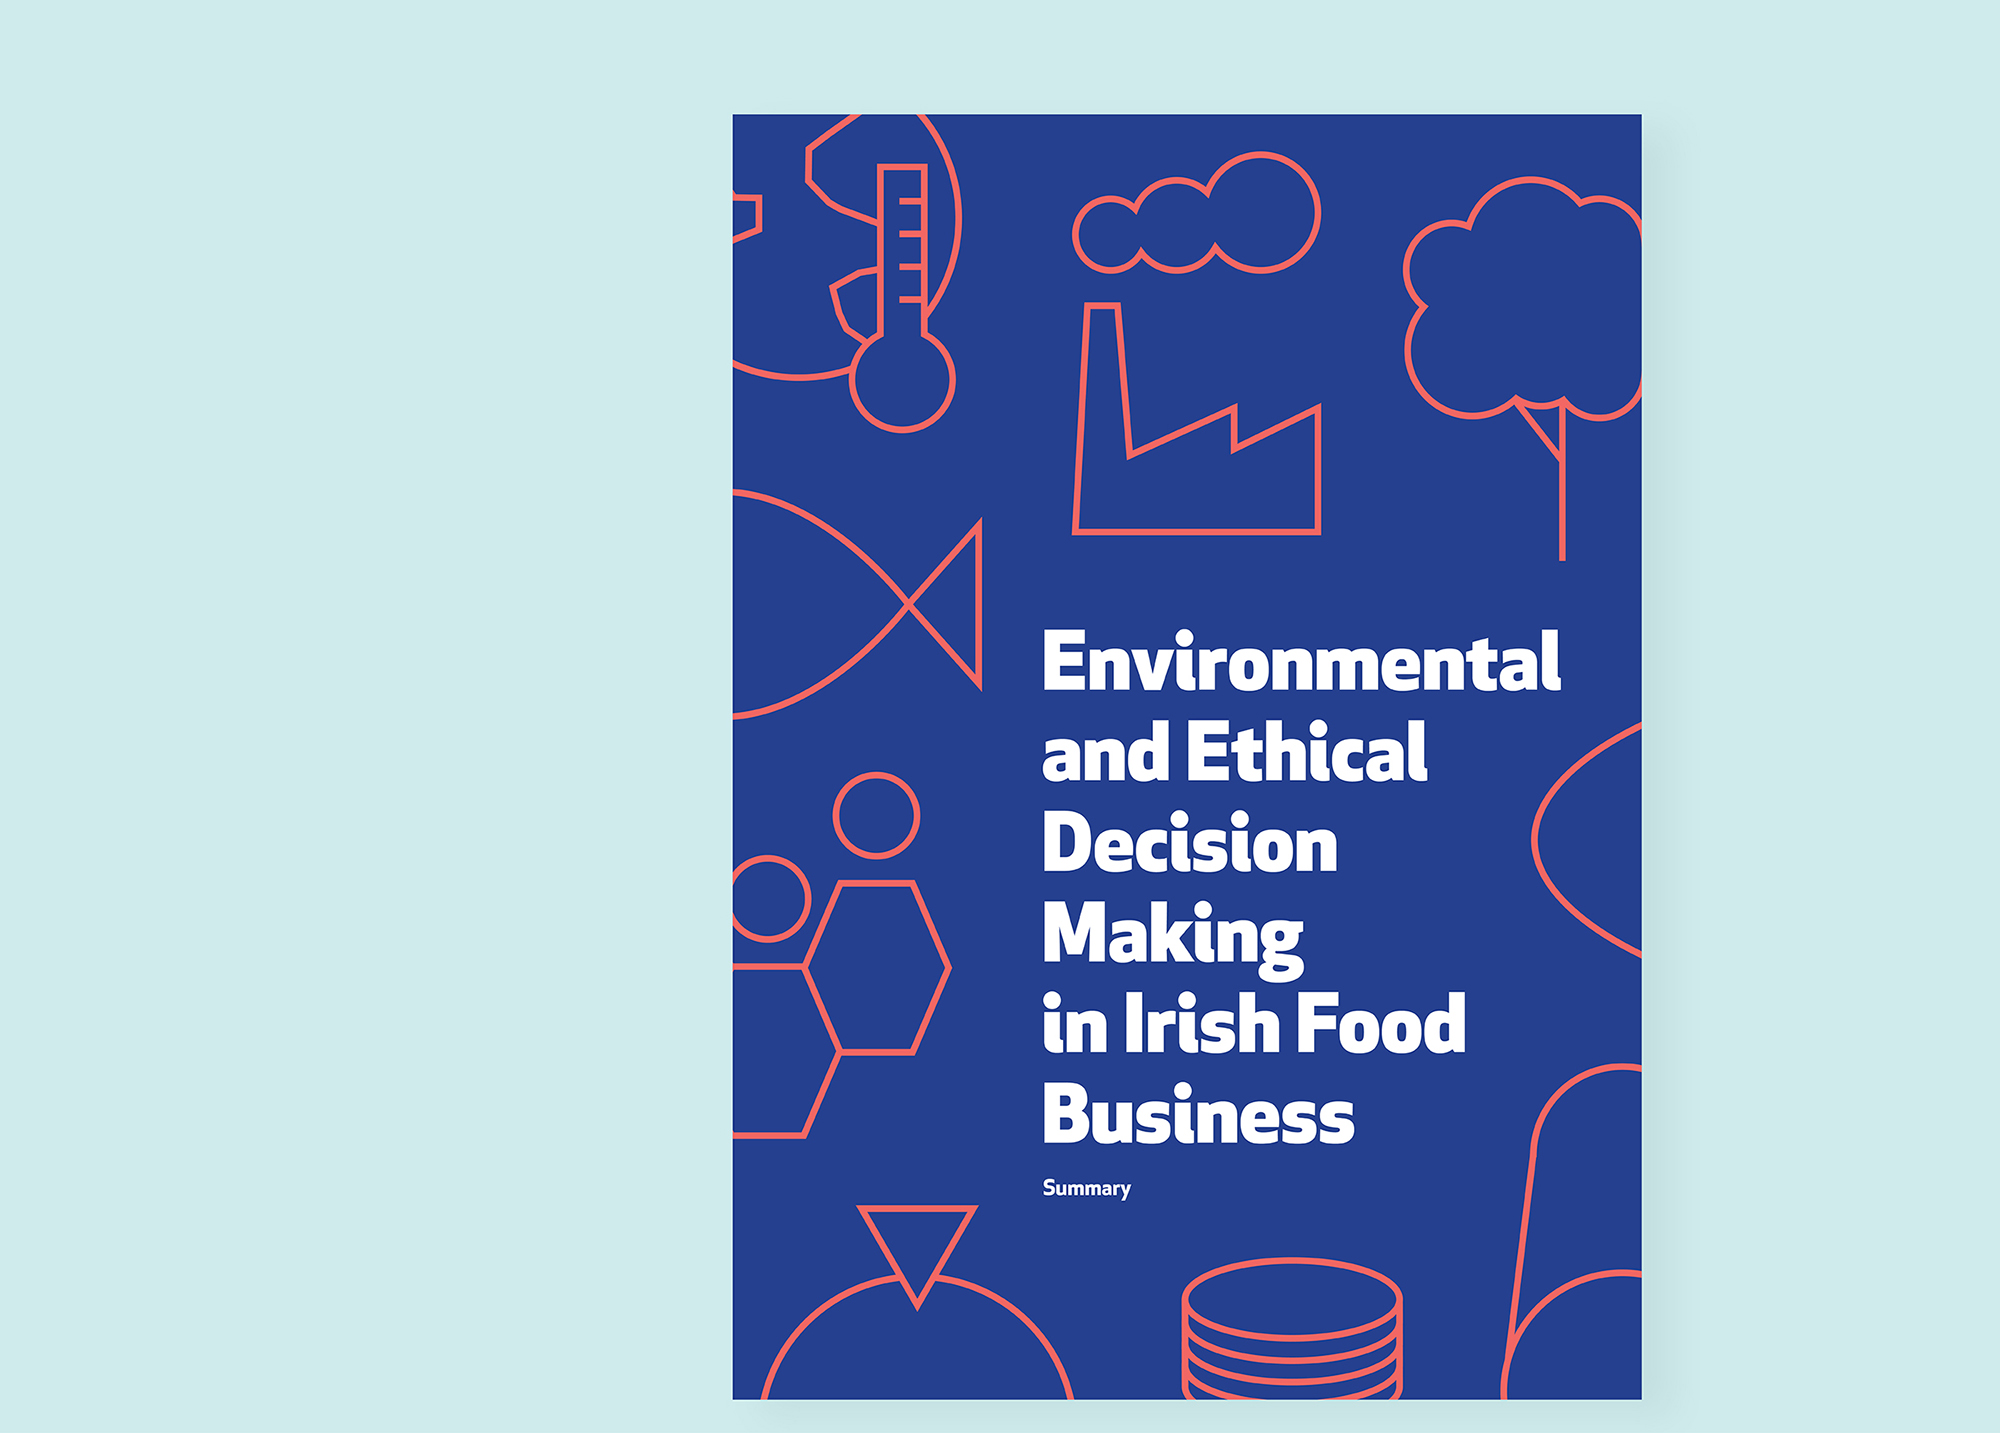 Cover image: Environmental and Ethical Decision Making in Irish Food Business Report